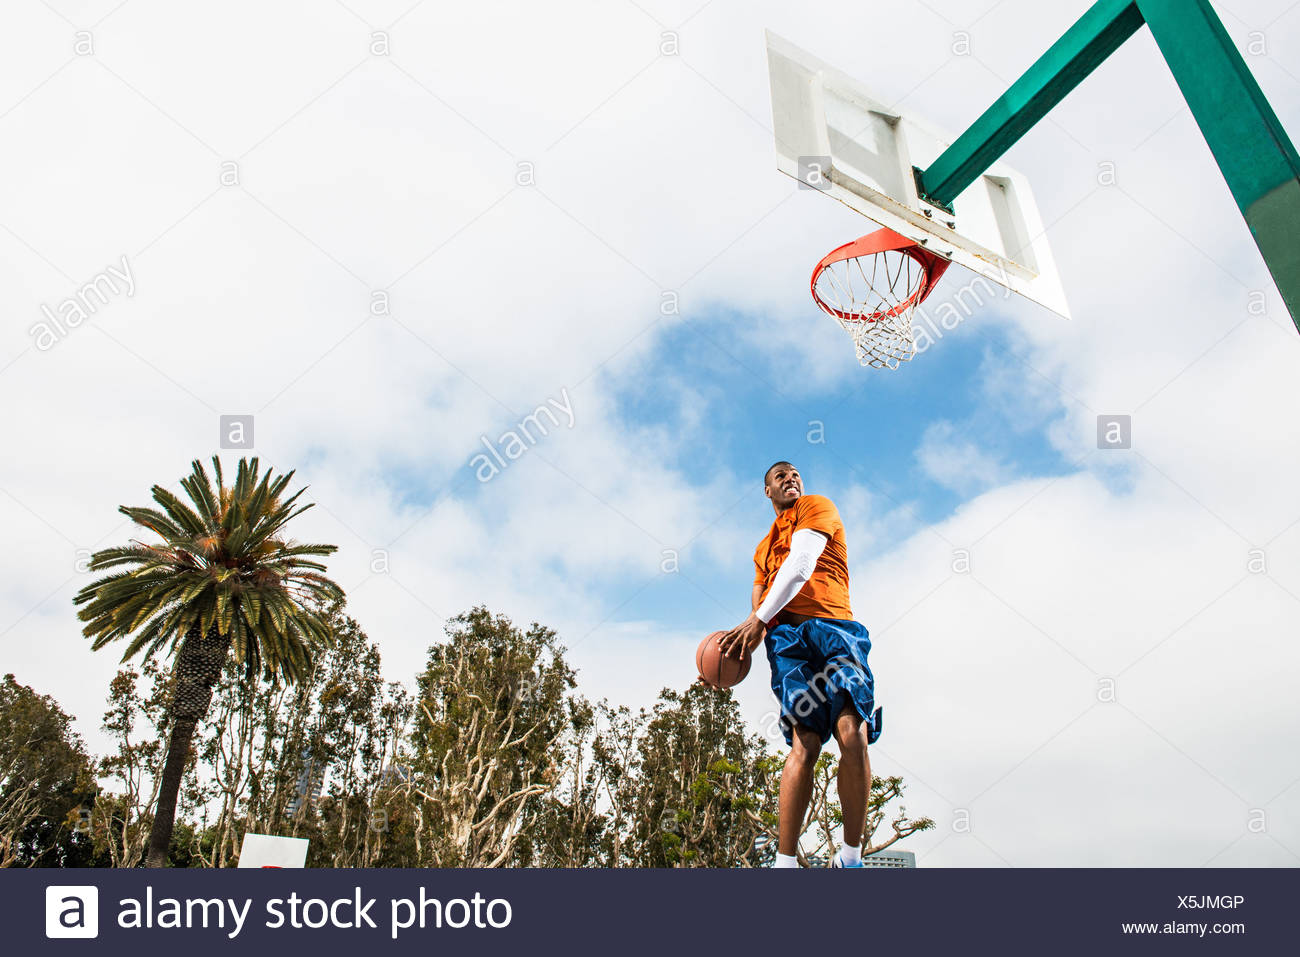 Basketball Hoop Perth Basketball In The Air Stock Photos Basketball In The Air Stock